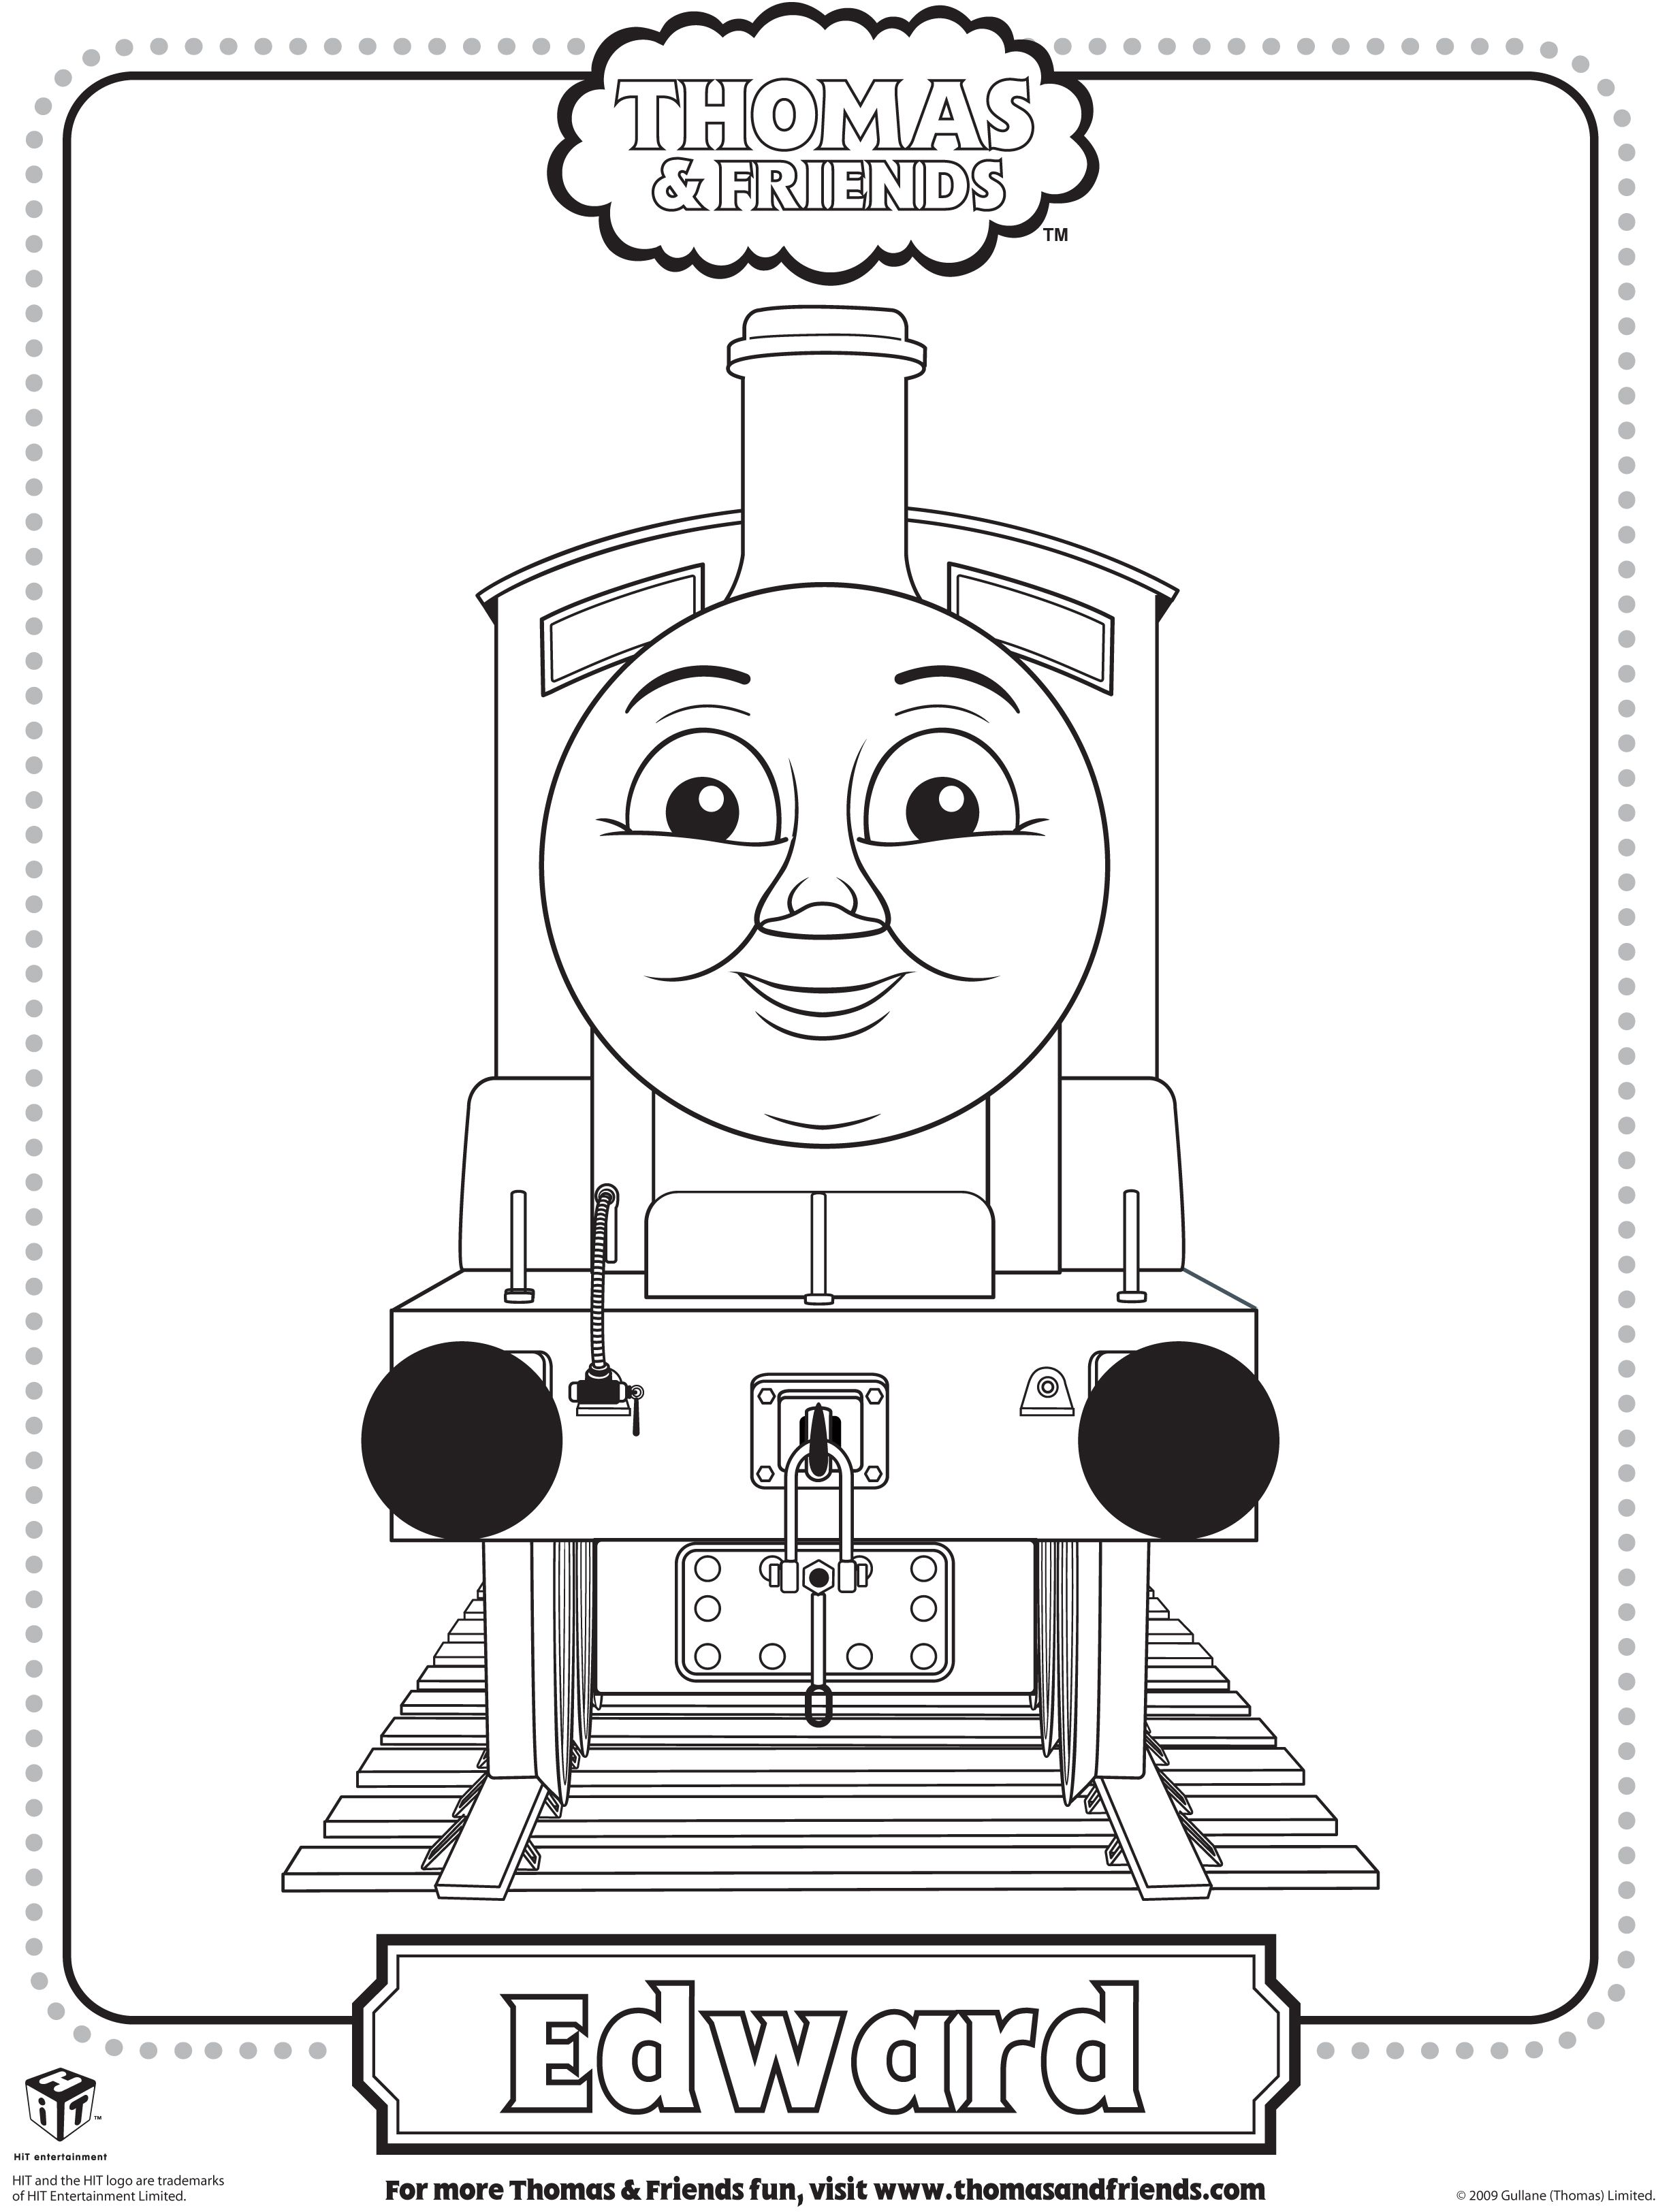 Pin By Erin Schultz On Thomas The Train Friends Thomas Ses Amis Train Coloring Pages Thomas The Train Thomas And Friends